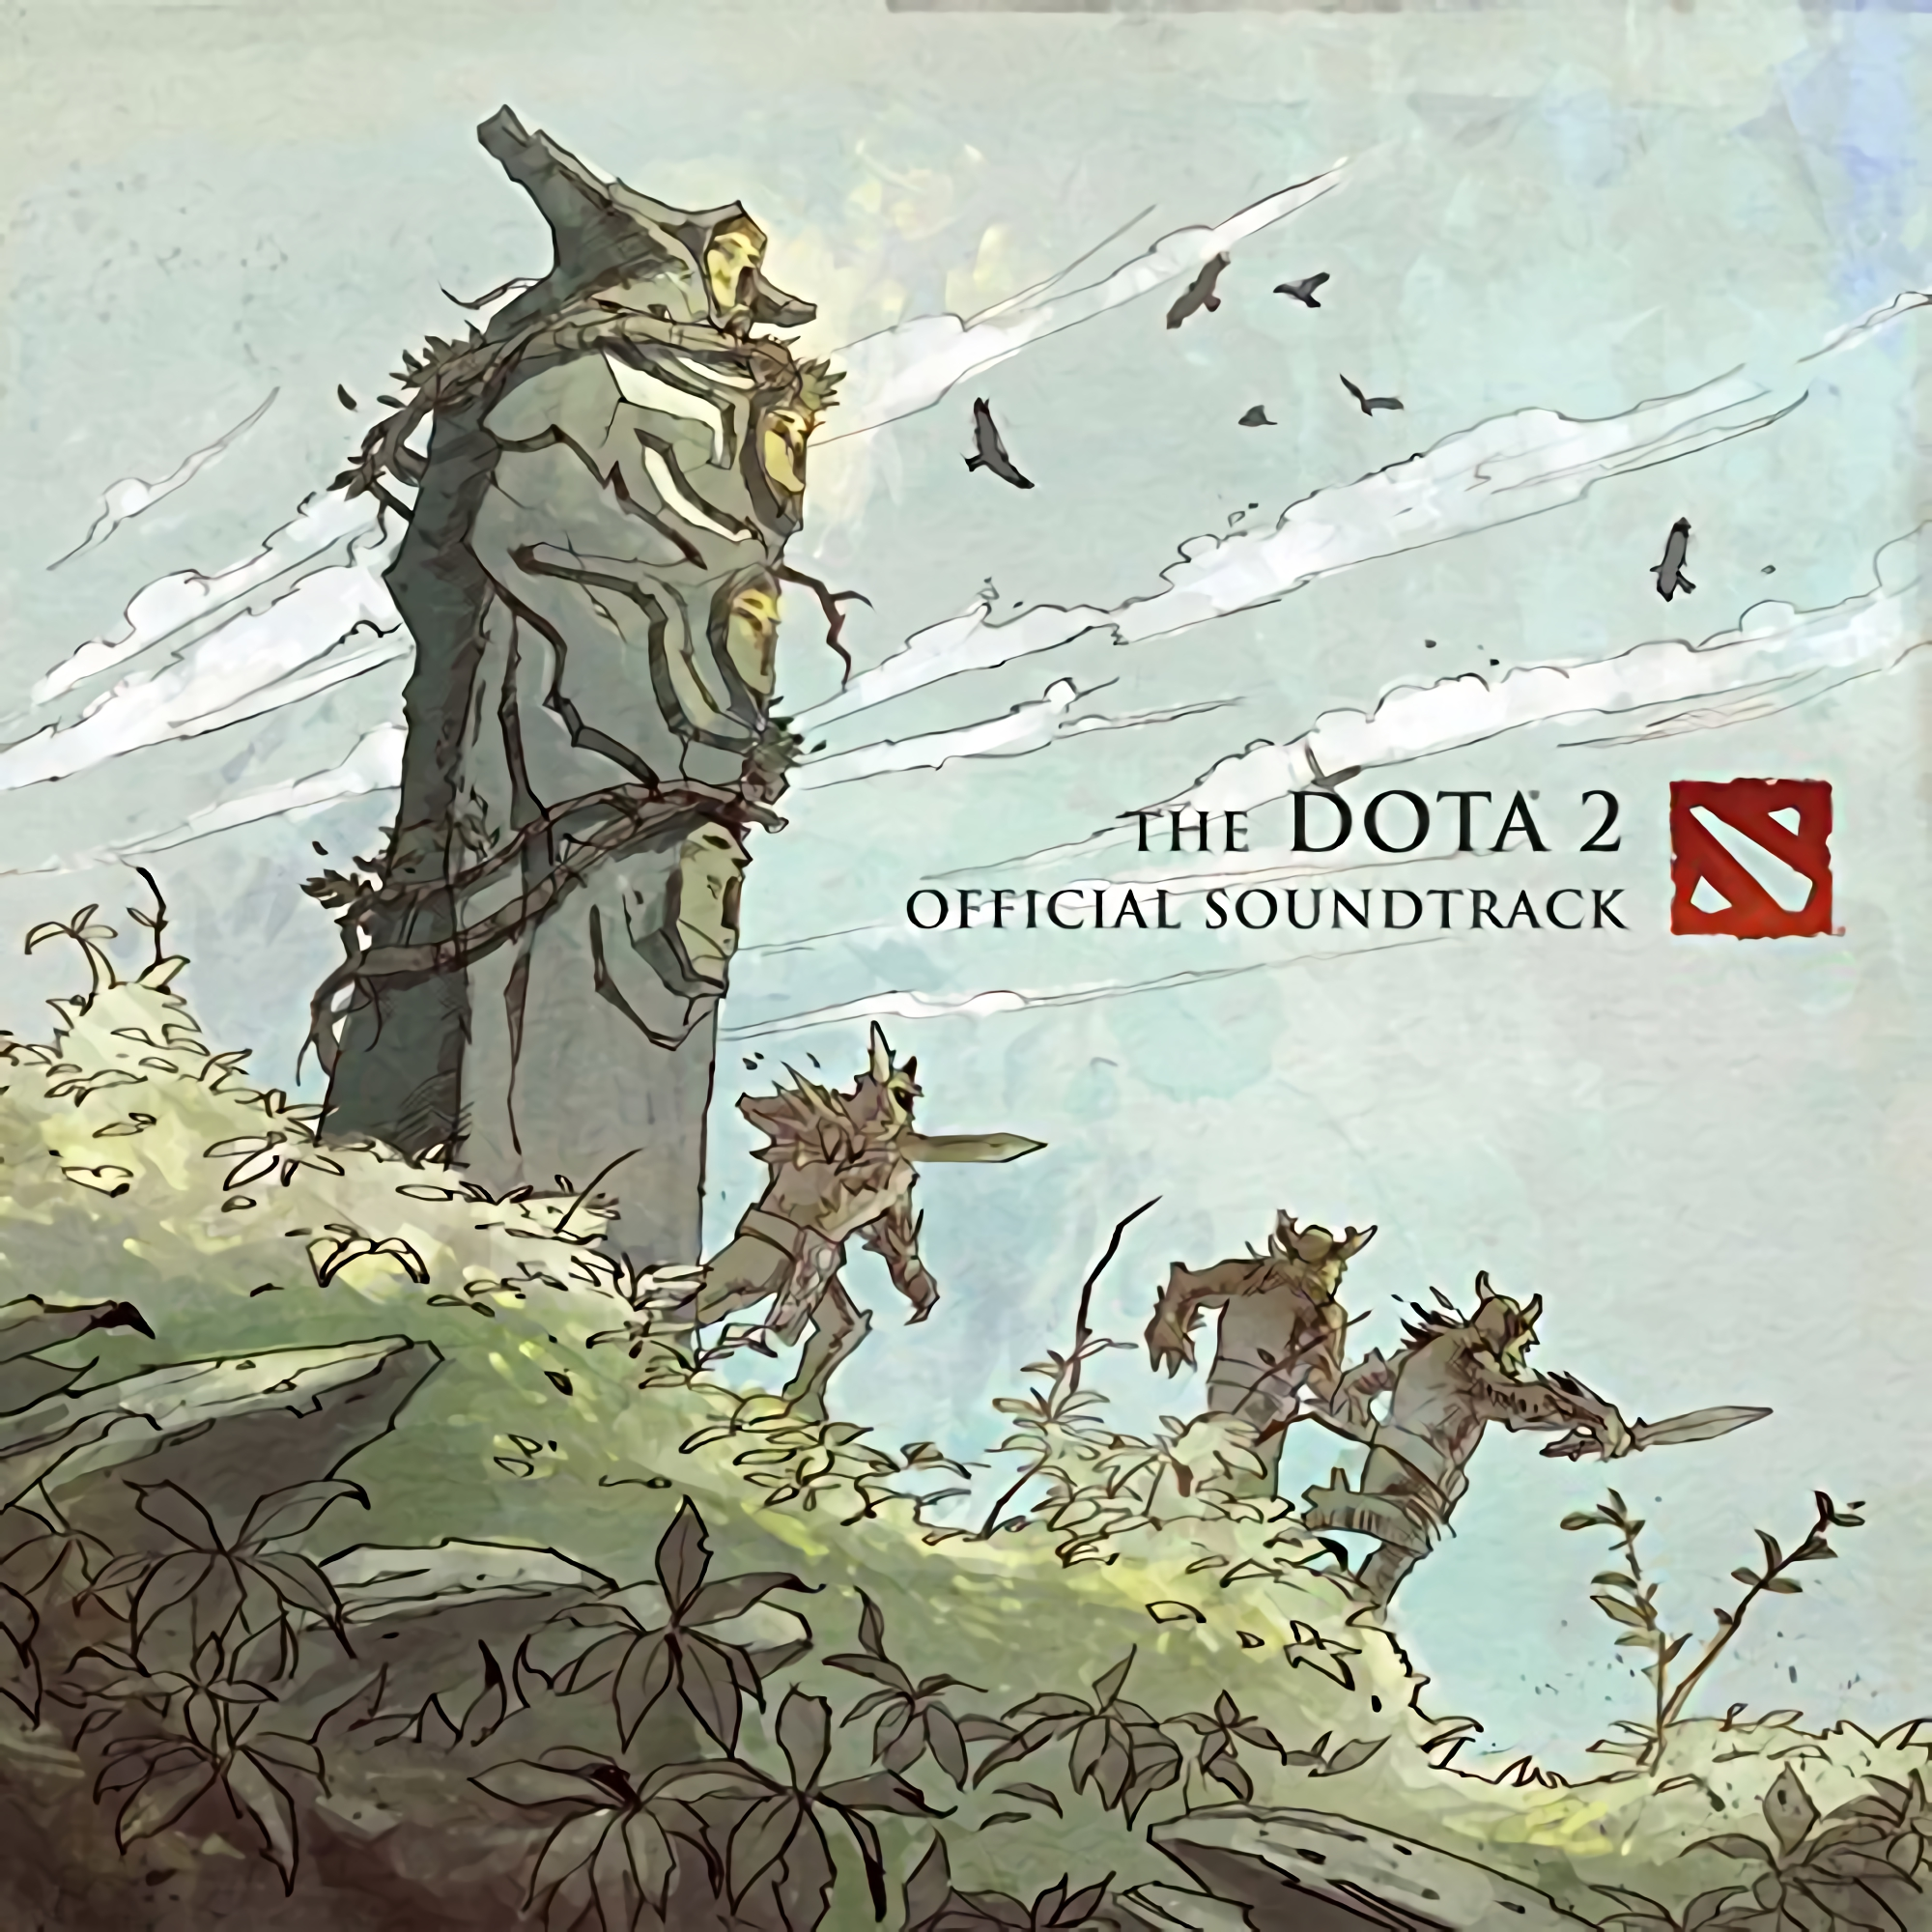 DotA 2 SoundTrack Cover